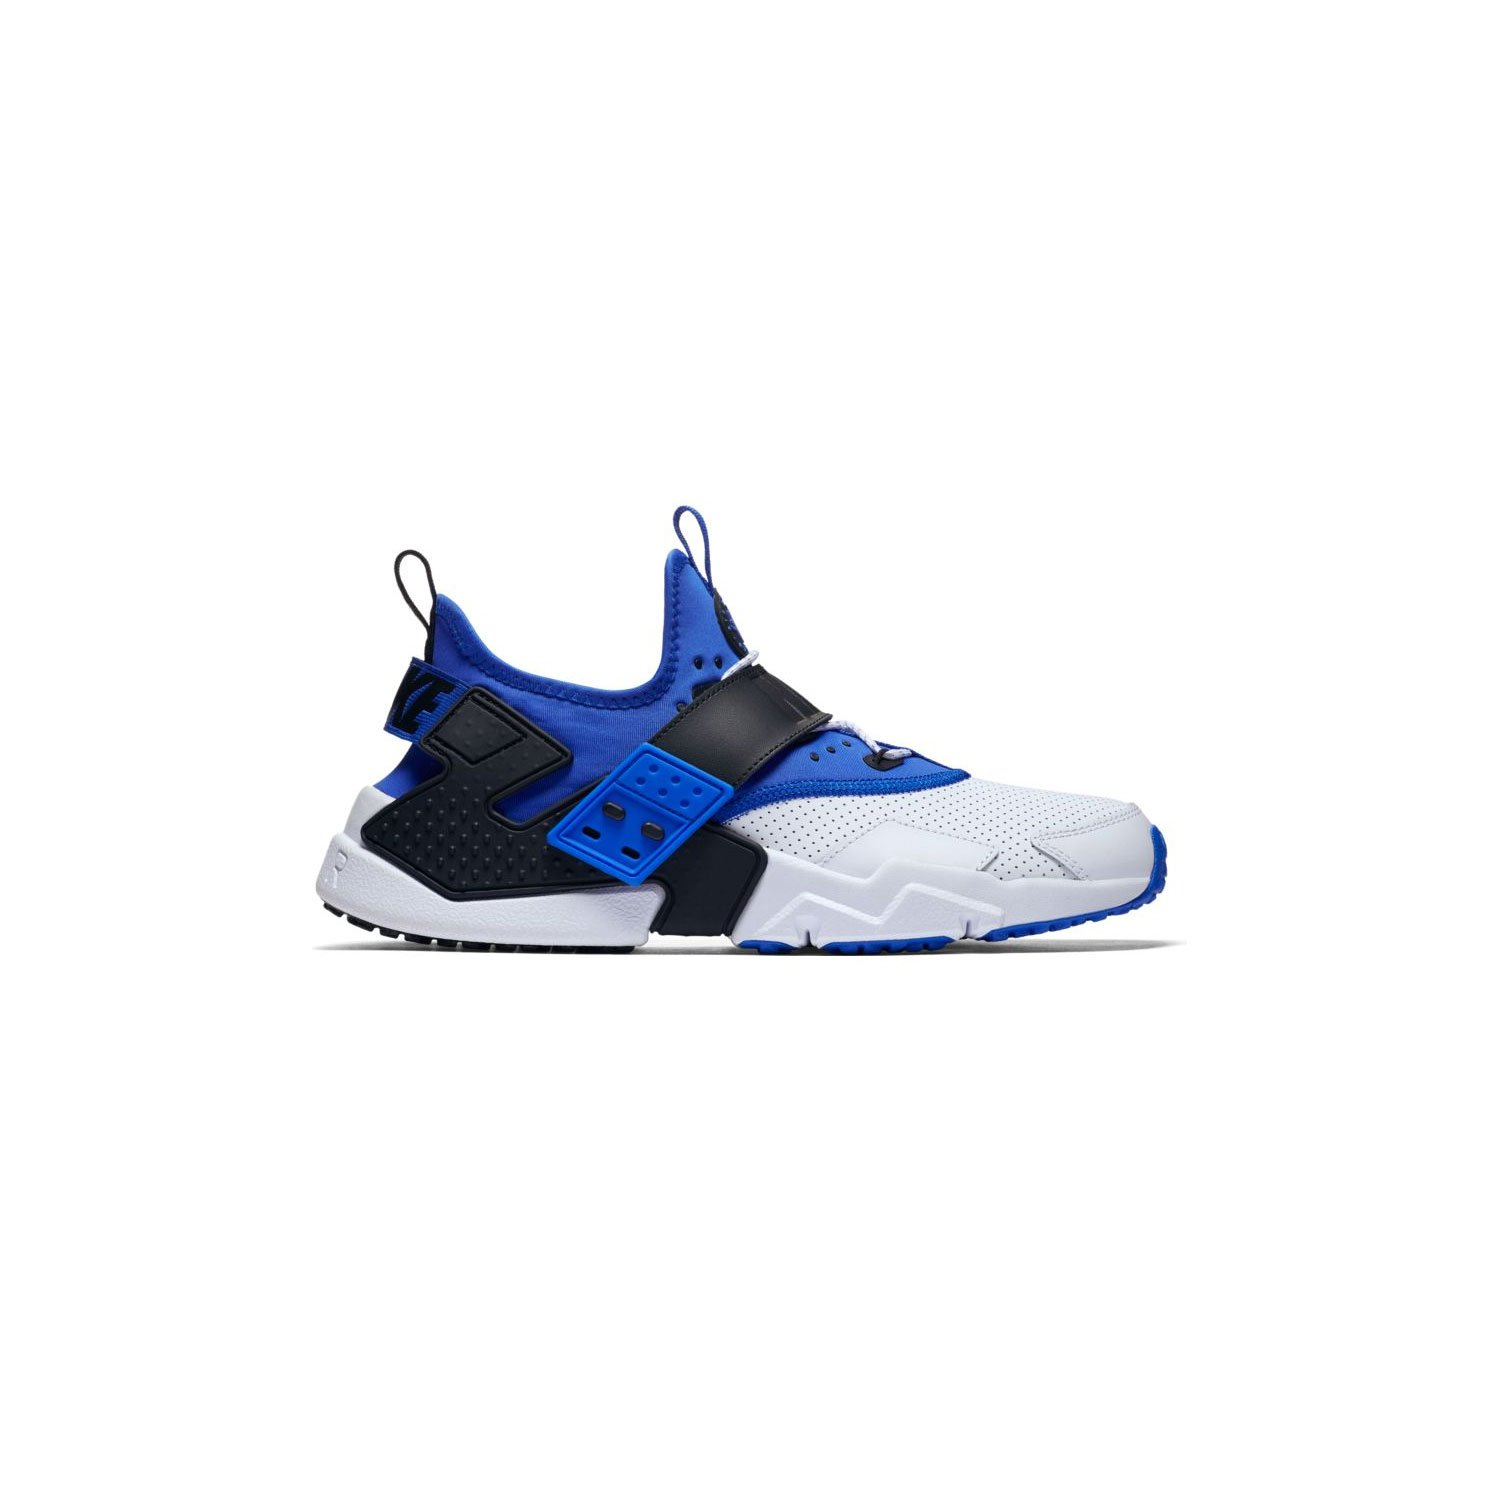 online store 88e5b 899a2 Amazon.com  Nike Mens Air Huarache Drift WhiteBlue AH7335-103 (Size  10.5)  Fashion Sneakers